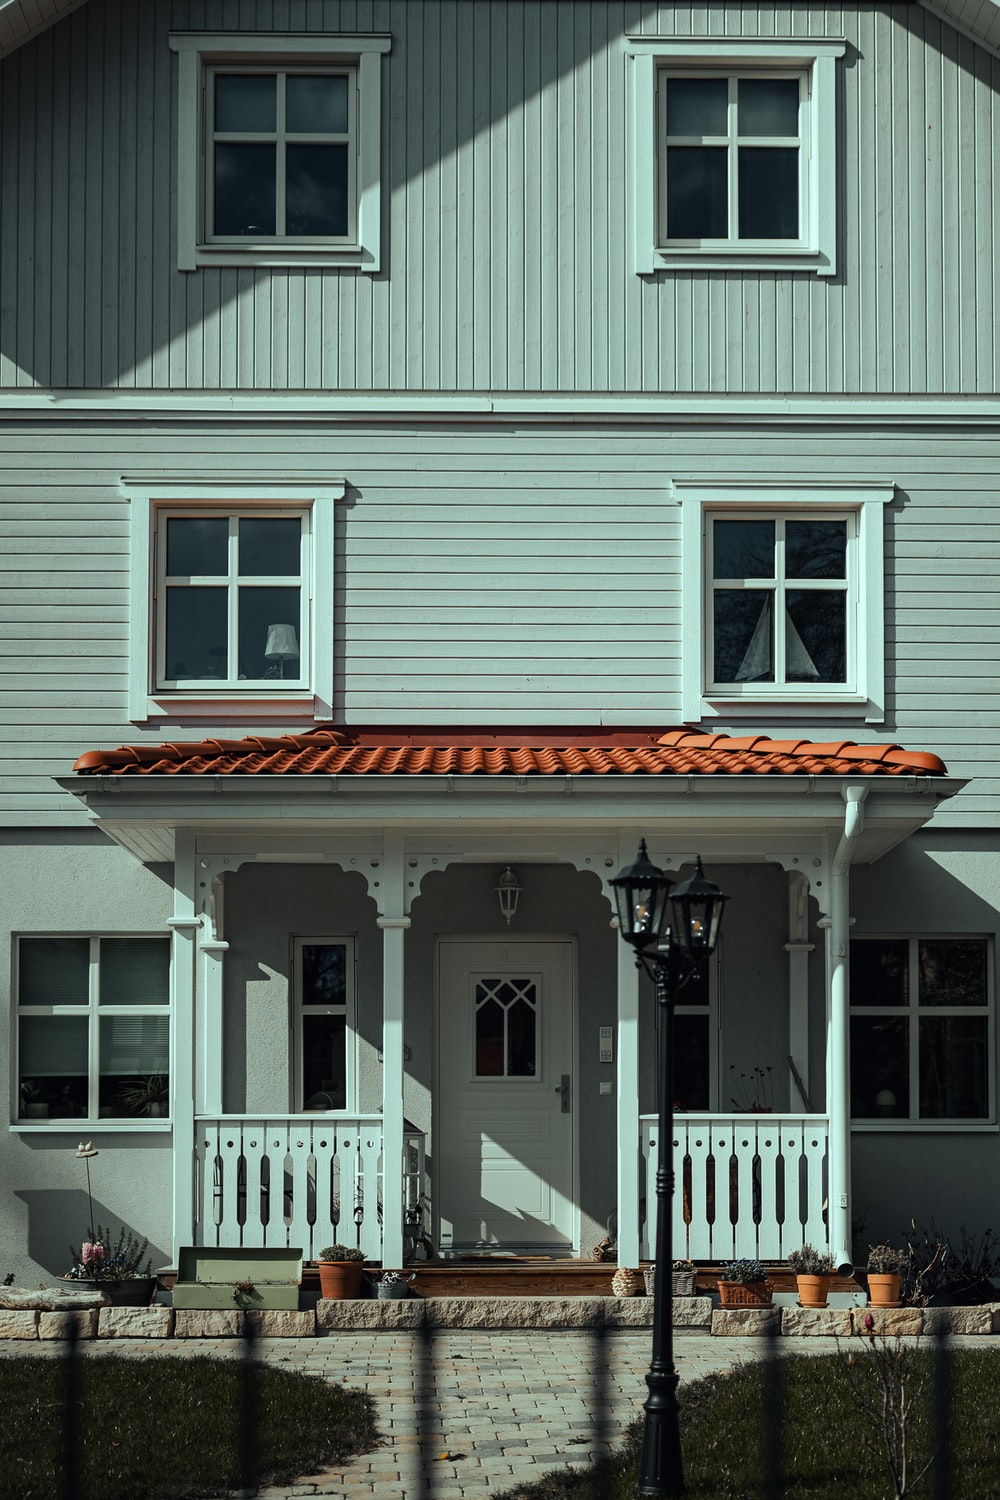 white wooden house with white wooden fence